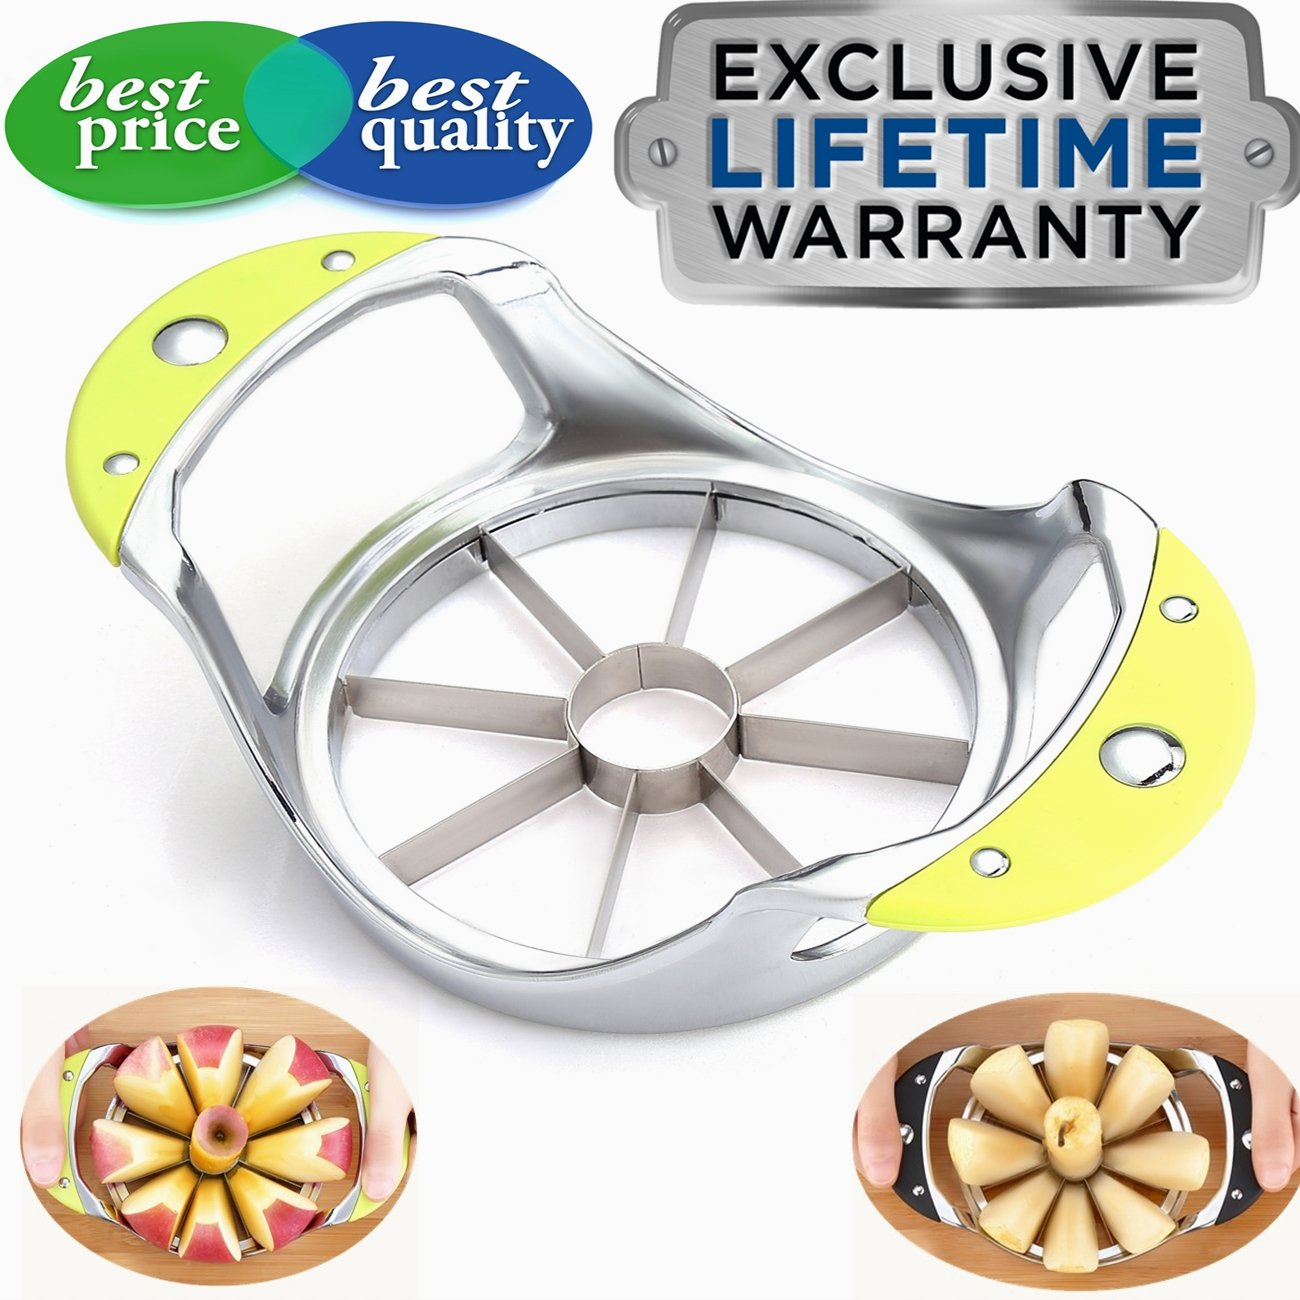 Apple Slicer Apple Corer Slicer Blooming Onion Cutter Pear Divider wedger stainless steel metal core remover for larger apples decorer tool kitchen gadgets (Green)